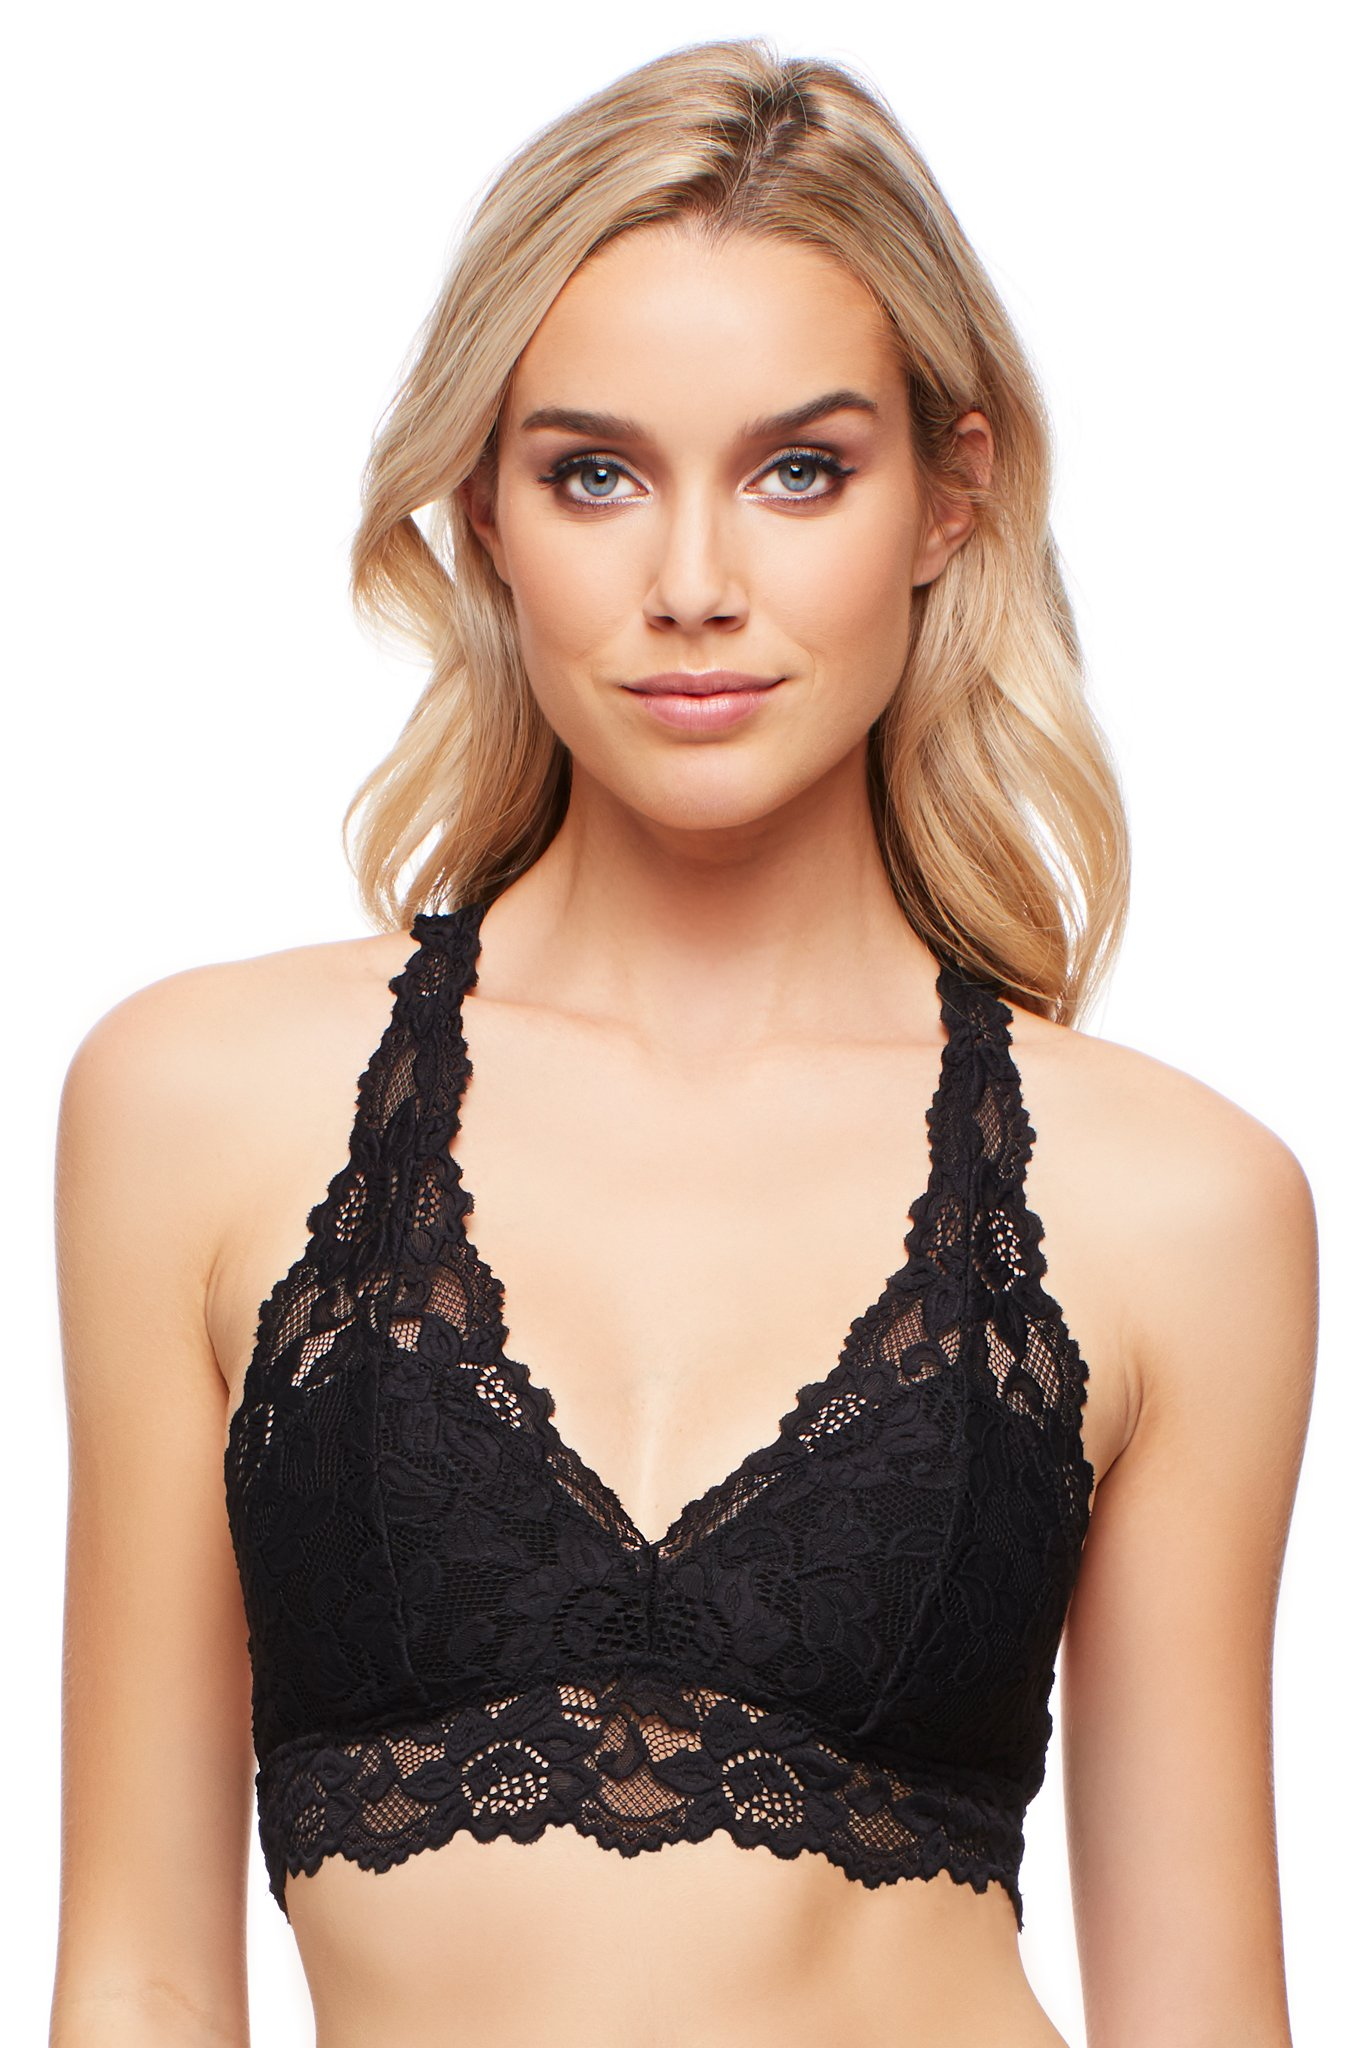 Jenny Jen Sexy Lace Mia Hourglass Racerback Bralette for women,Large,Jet Black